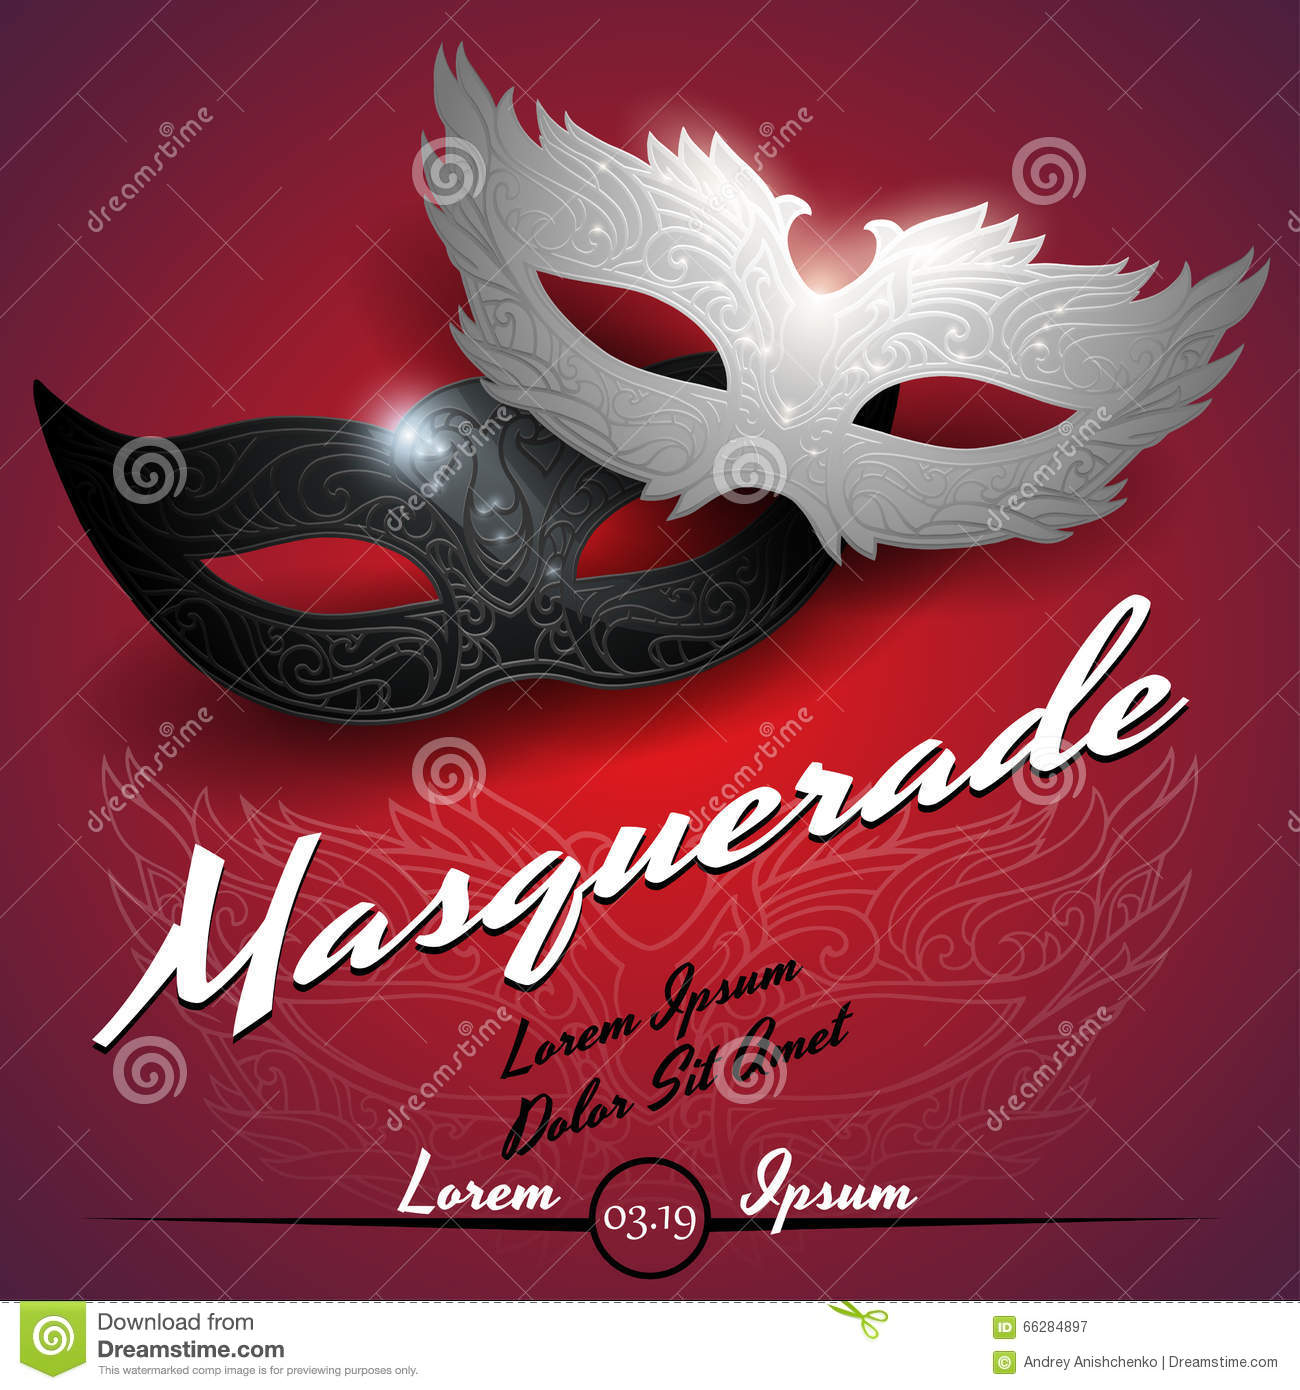 Masquerade Ball Party Invitation Poster Stock Vector - Illustration ...